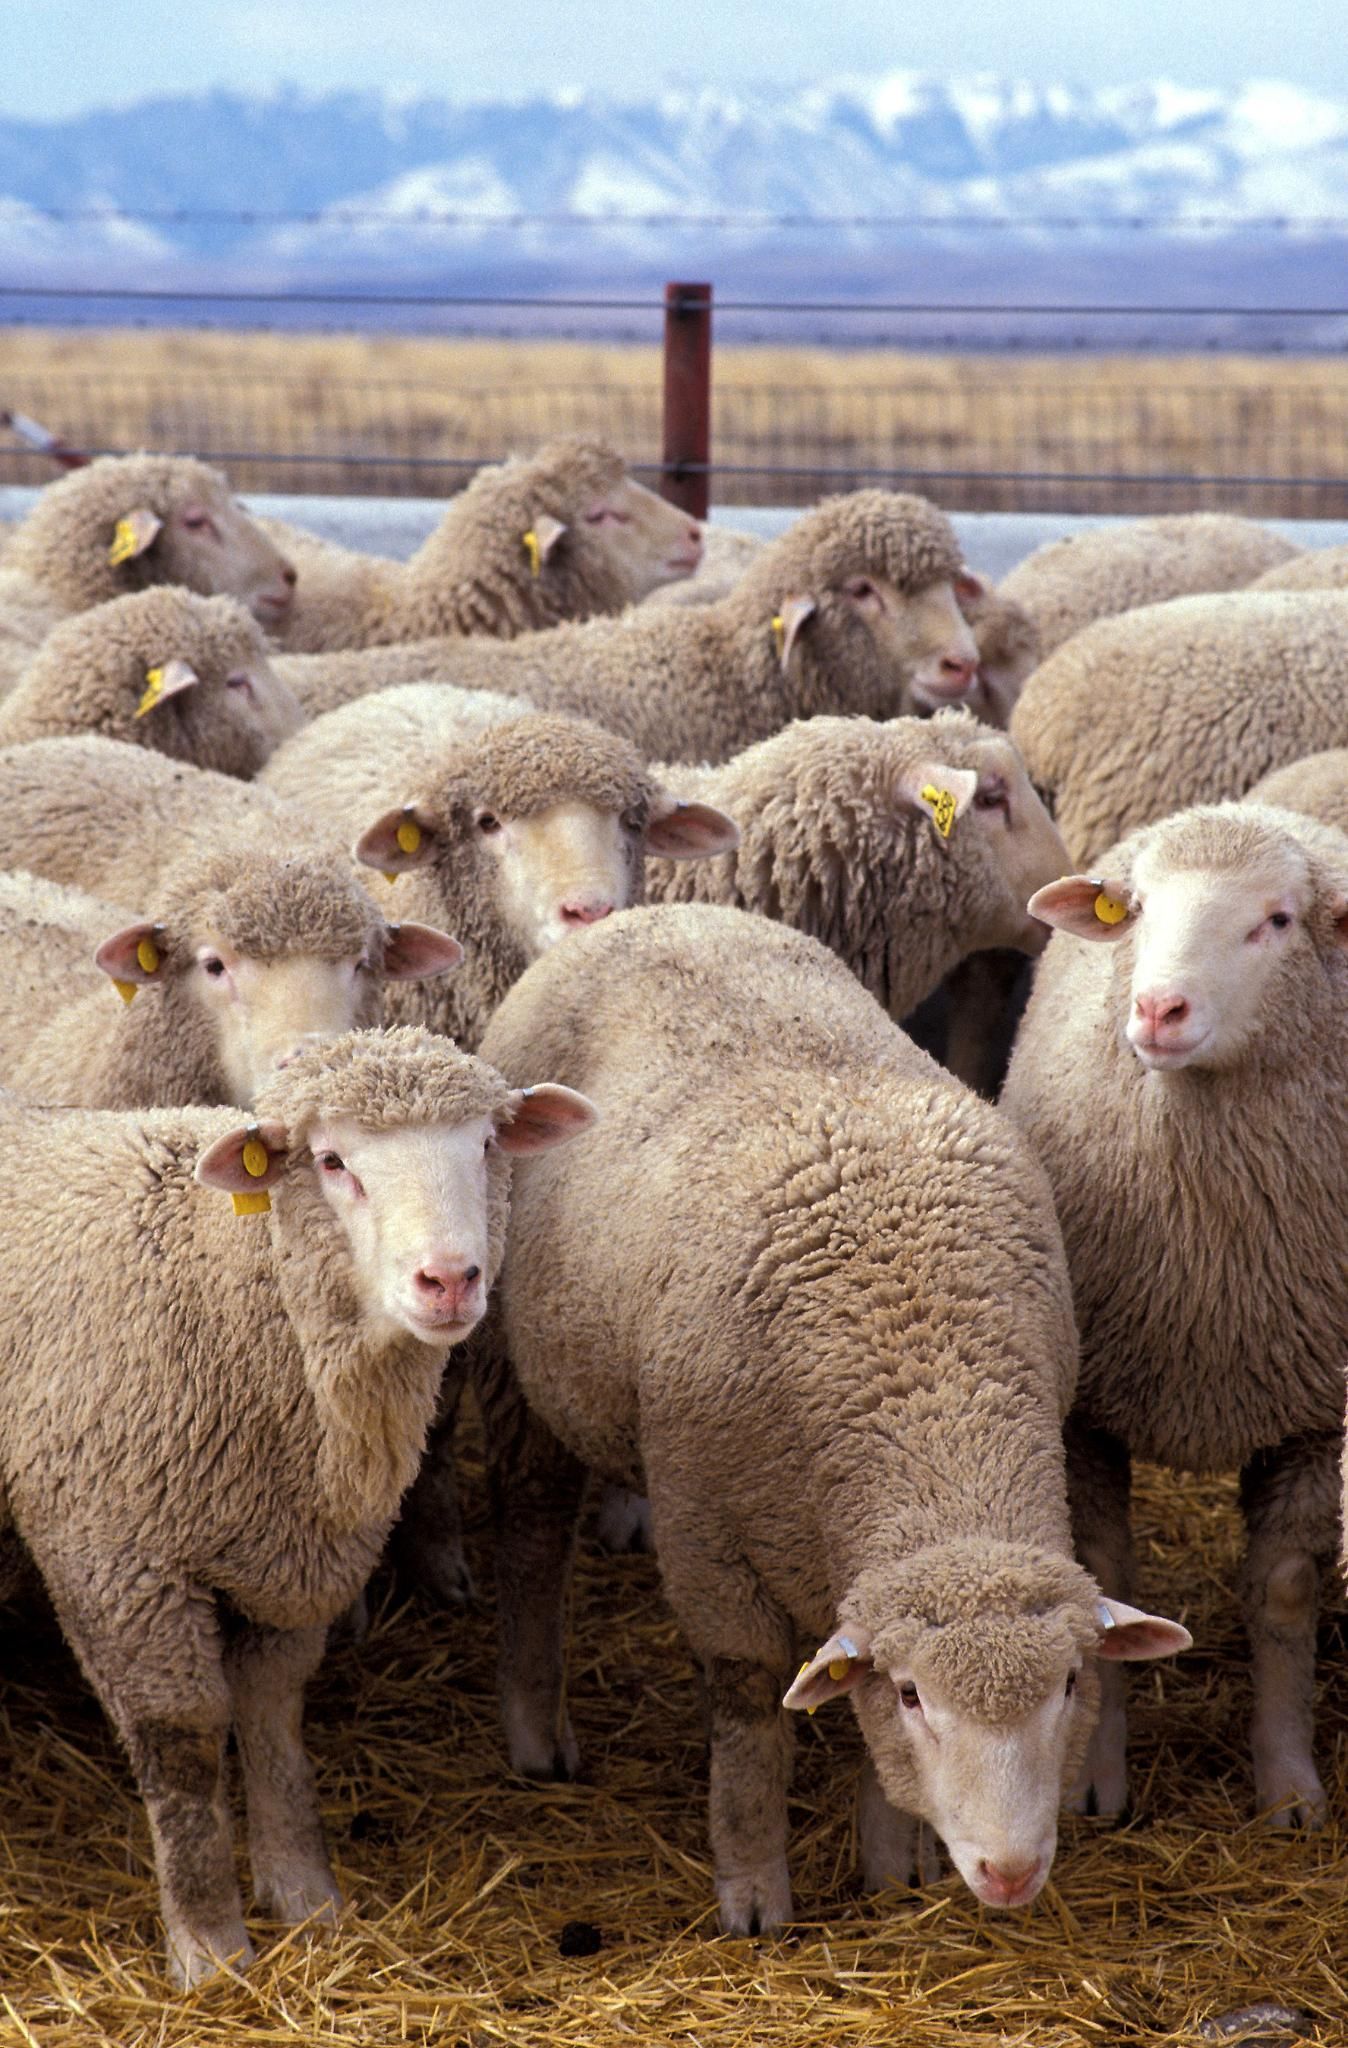 How many different kinds of sheep are there